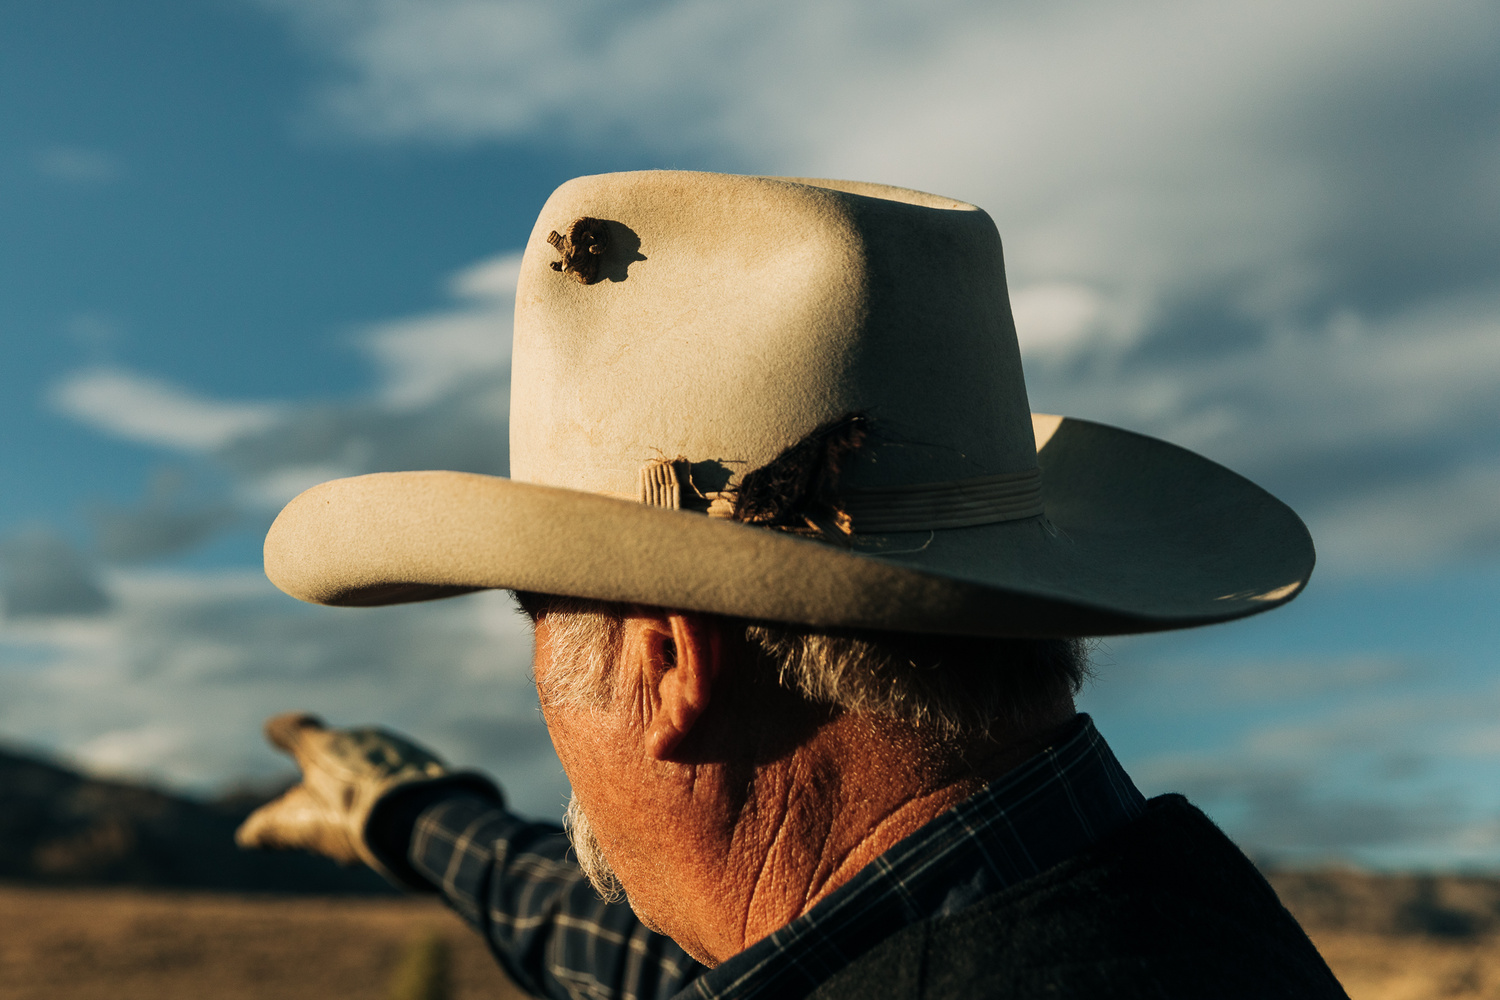 Farmer In All Of Us by Chip Kalback